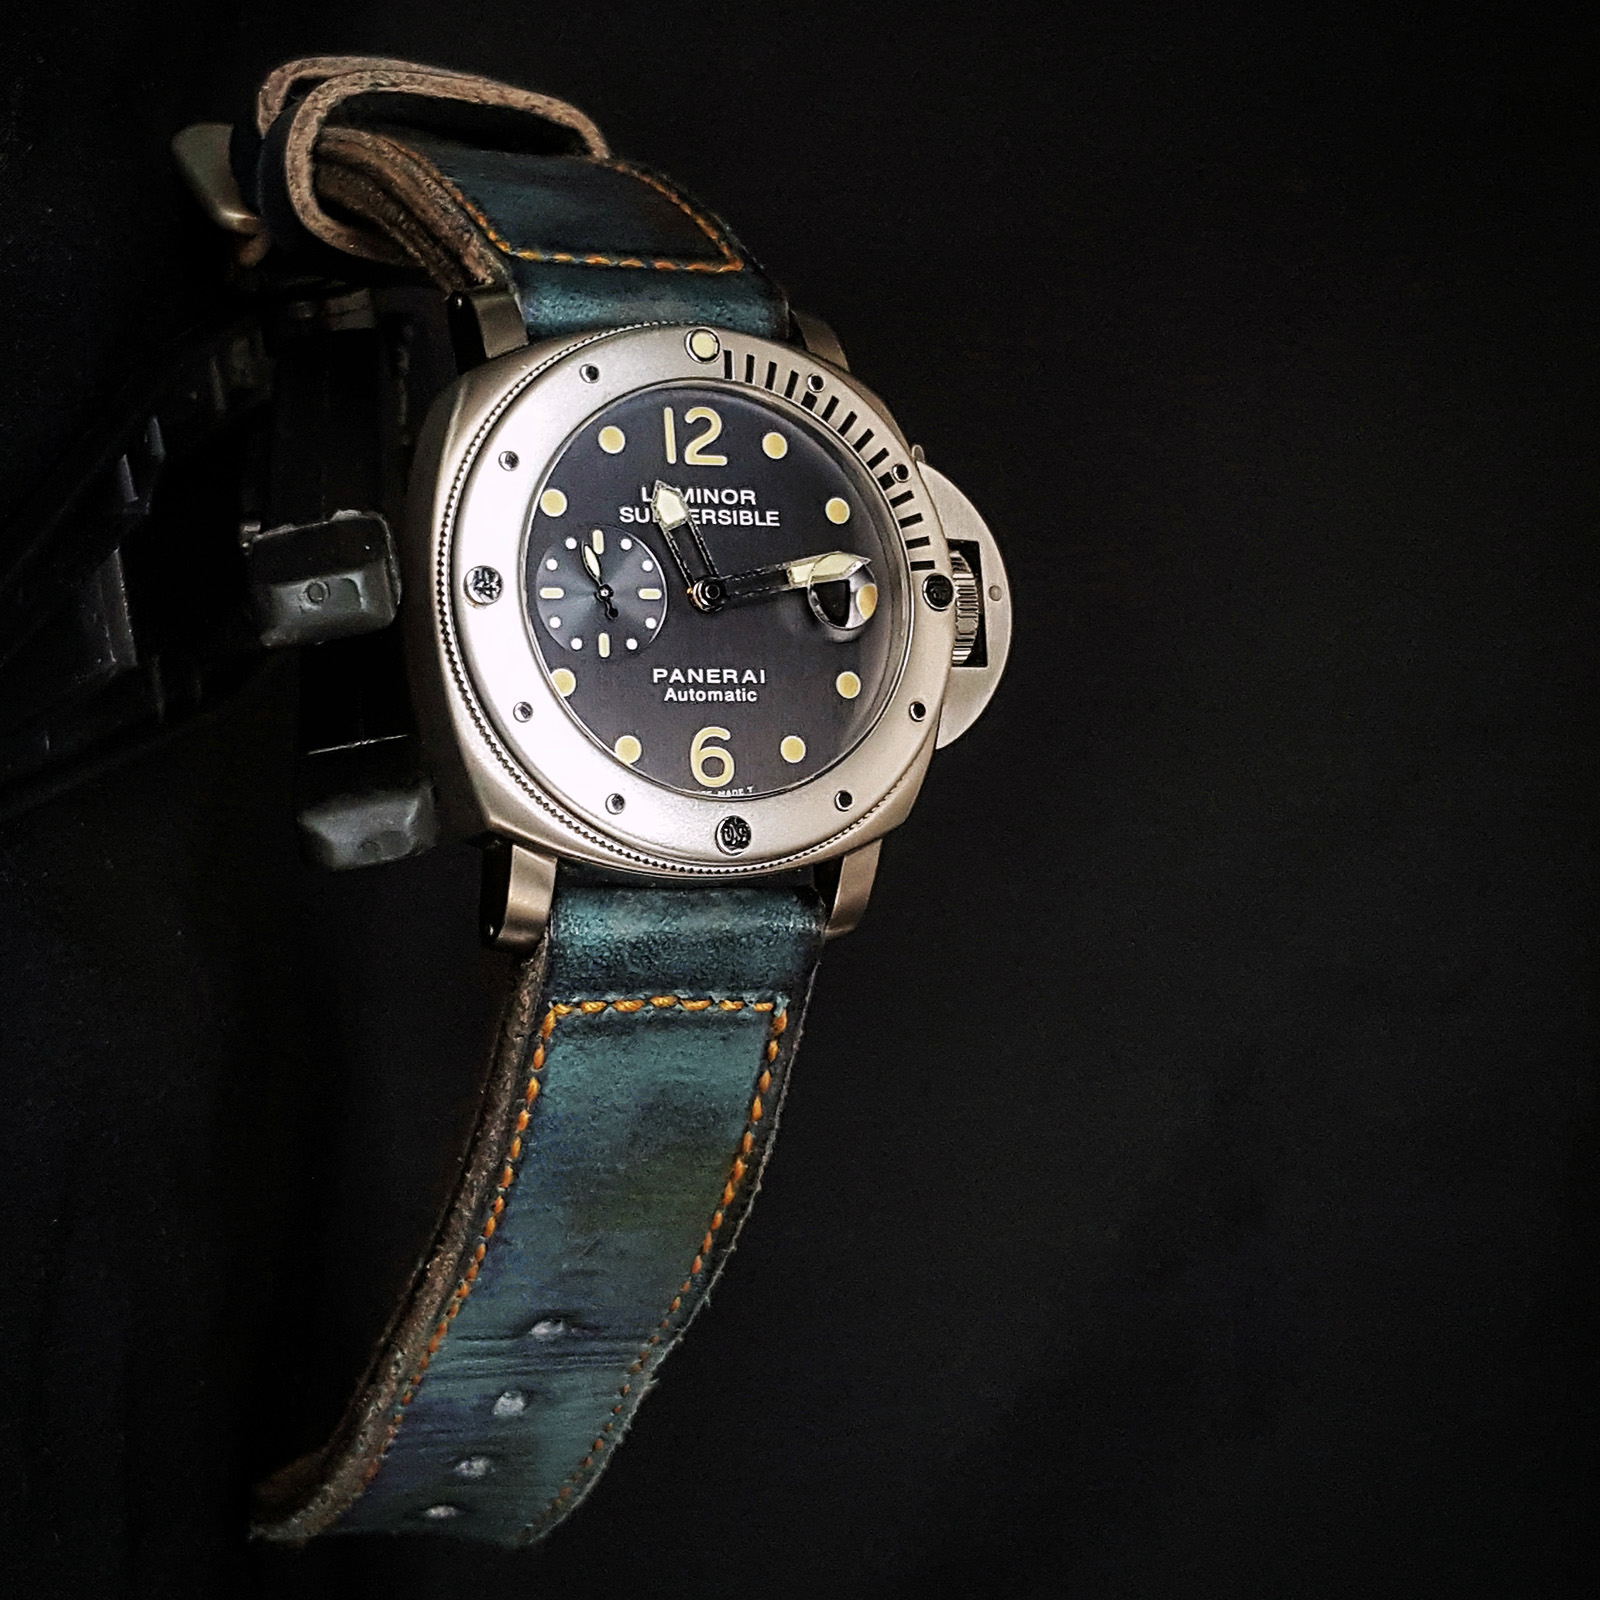 swiss blackbird for breitling action watches avenger impossible power sports mission watch